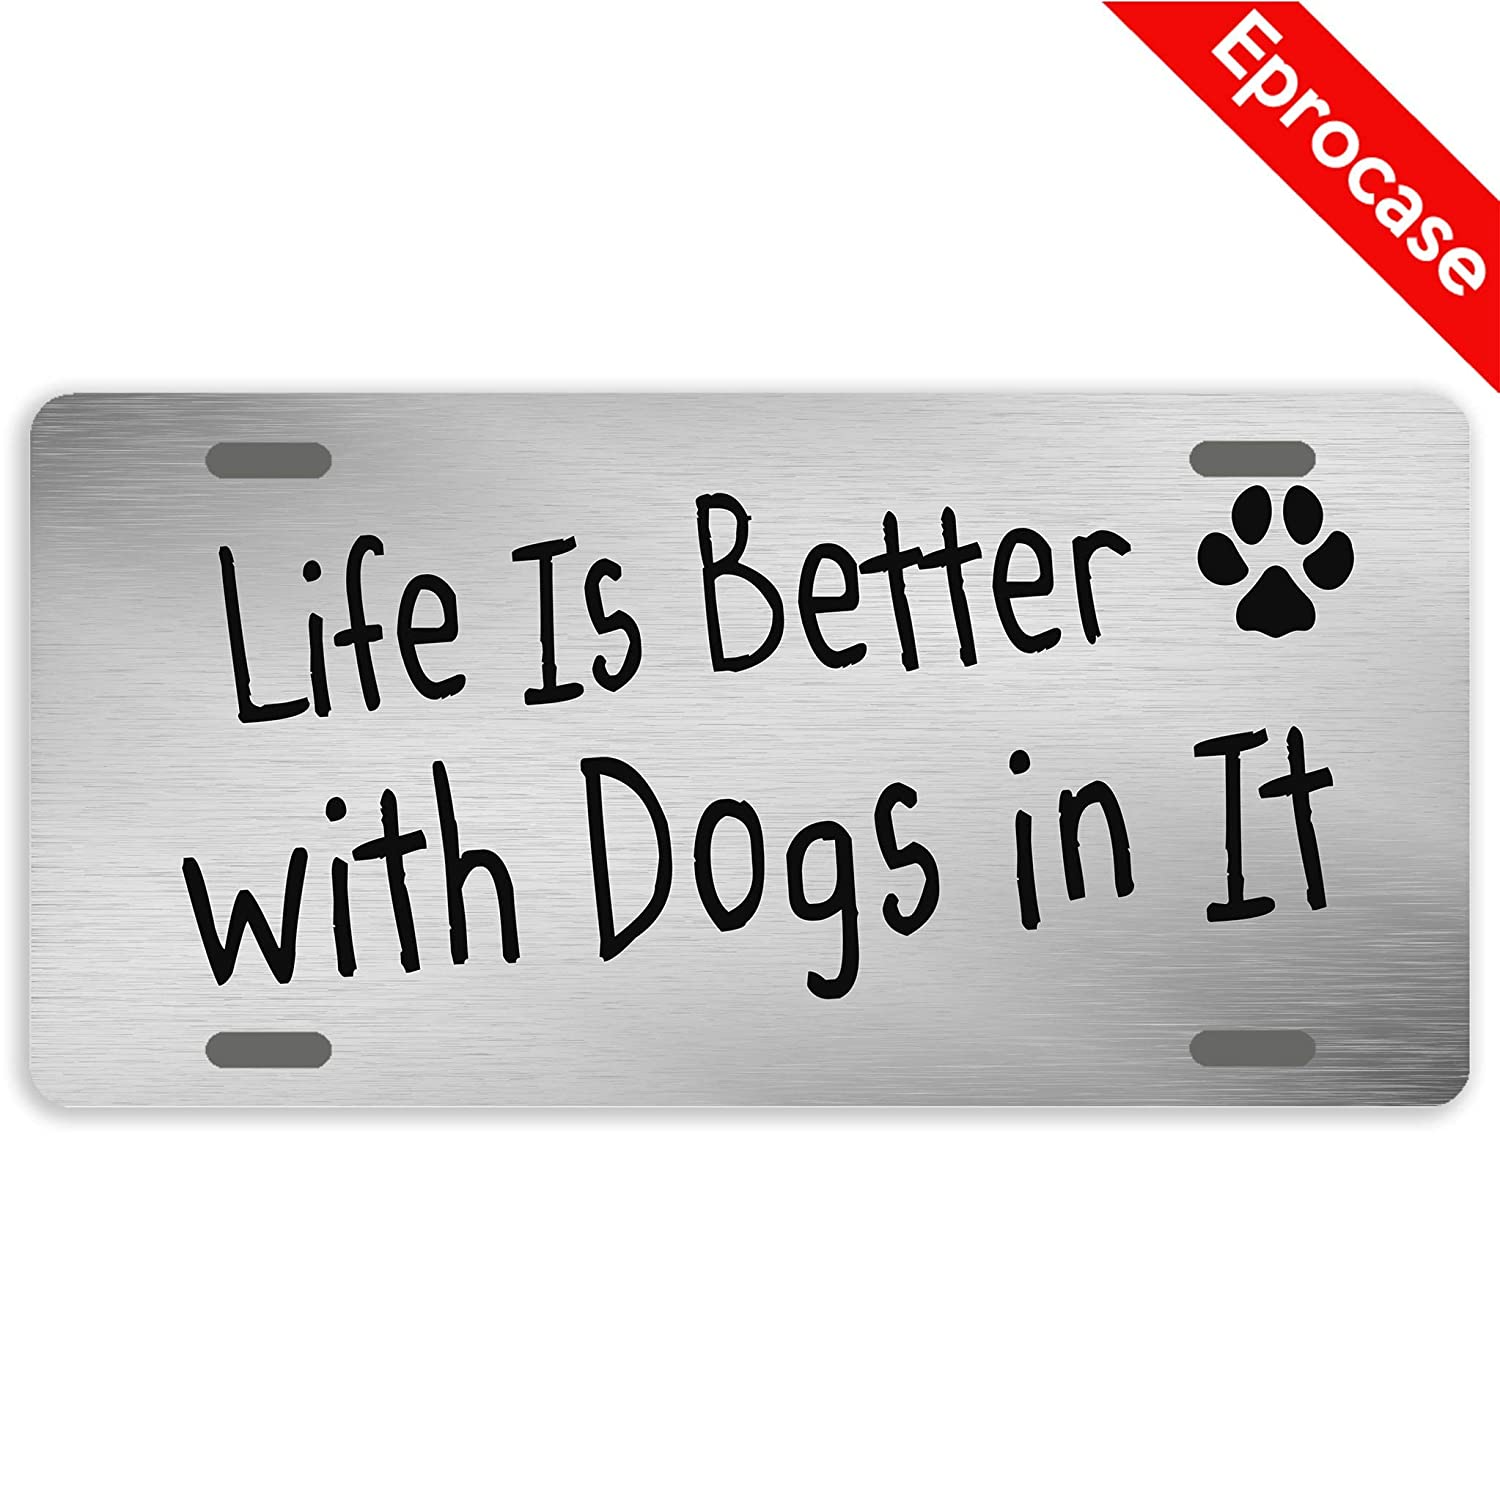 TrunyArt License Plate Life is Better with Dogs in It License Plate Cover Decorative Metal Car Tag Sign Auto Tag Novelty Front License Plate 4 Holes 12 x 6